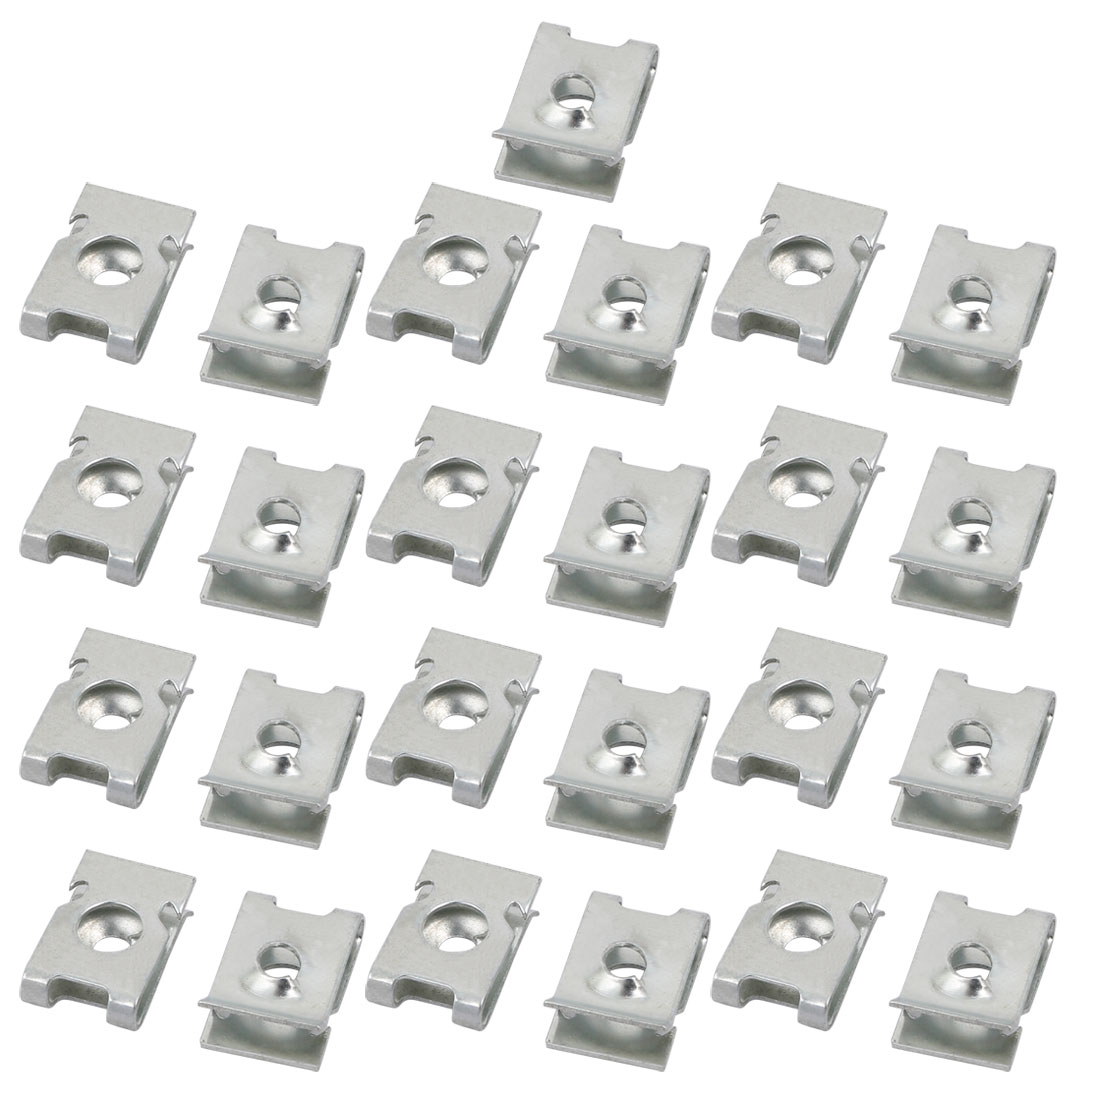 25pcs 65Mn Spring Steel Extruded U Nut Clip fit ST4.2 Bolt